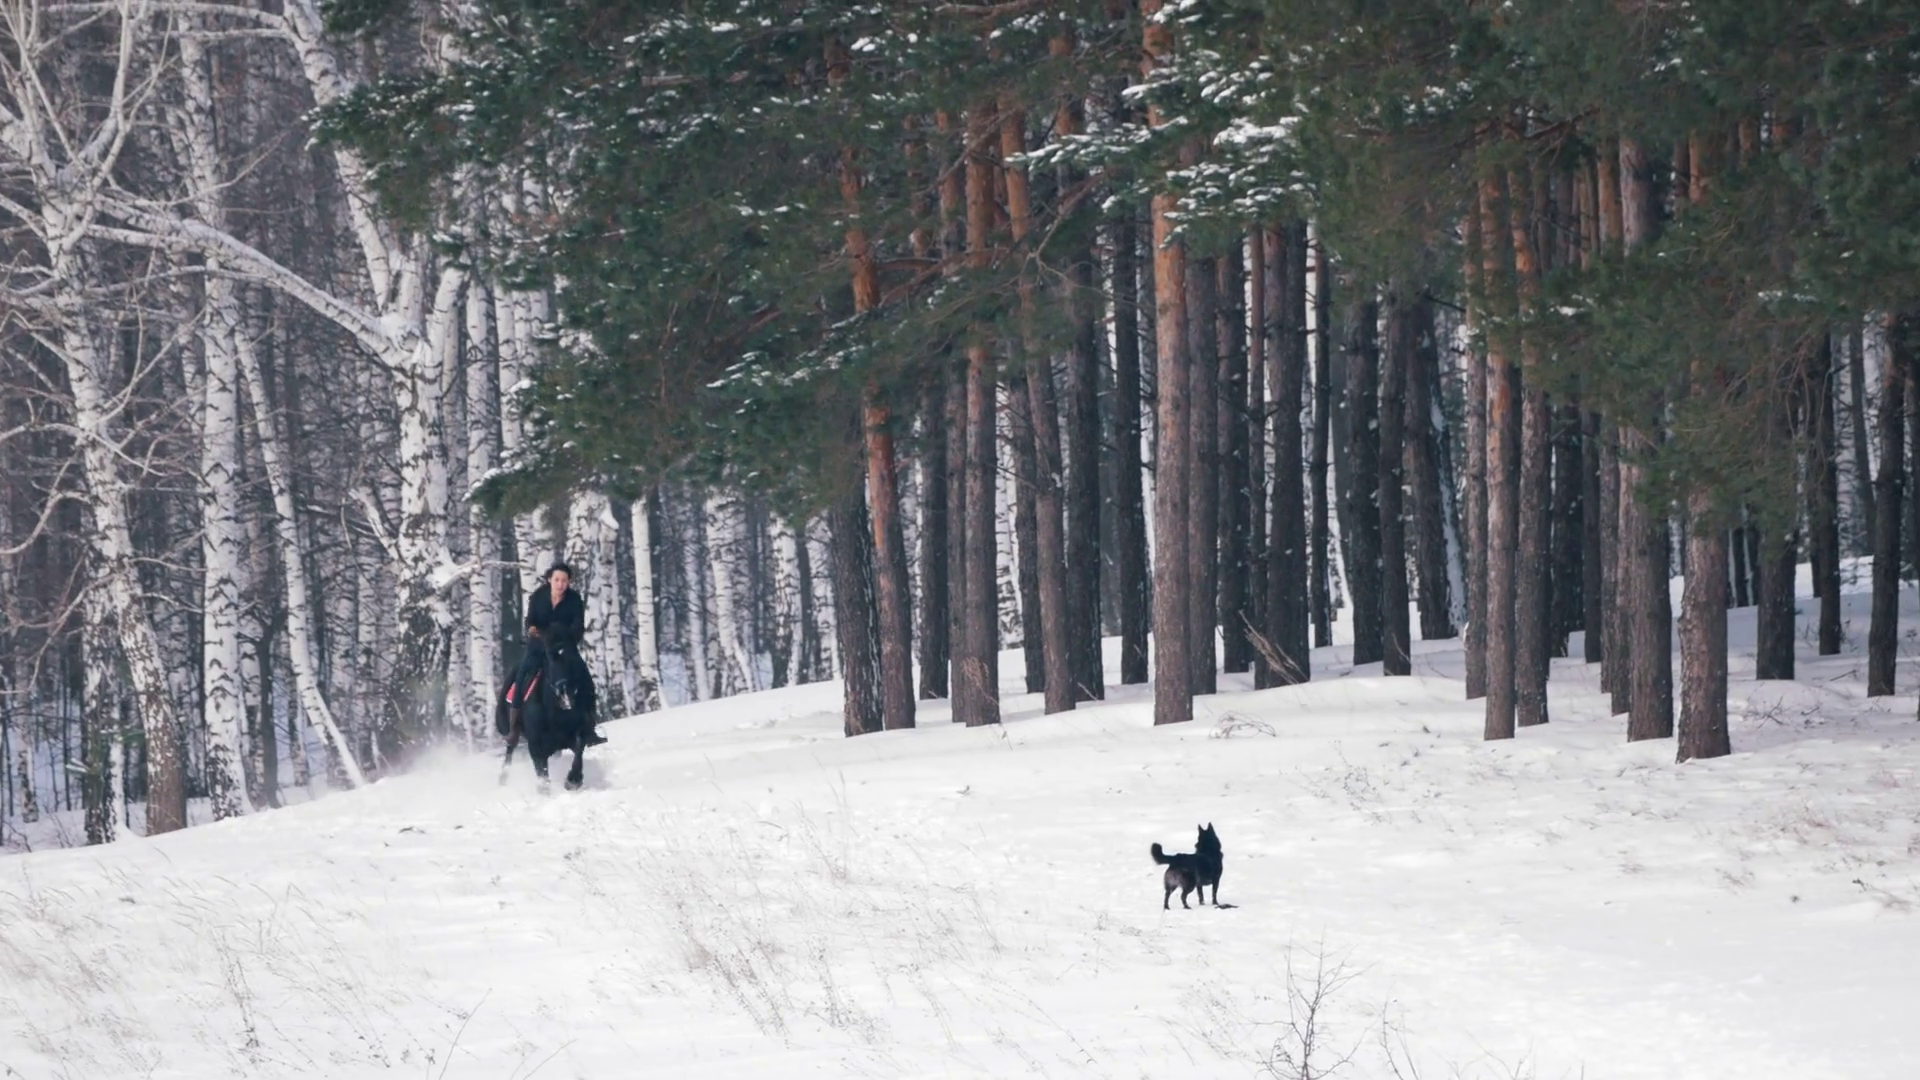 Longhaired Female Rider Wild And Fast Riding Black Horse Through The Snow Dog Running Nearby Stock Video Footage Storyblocks